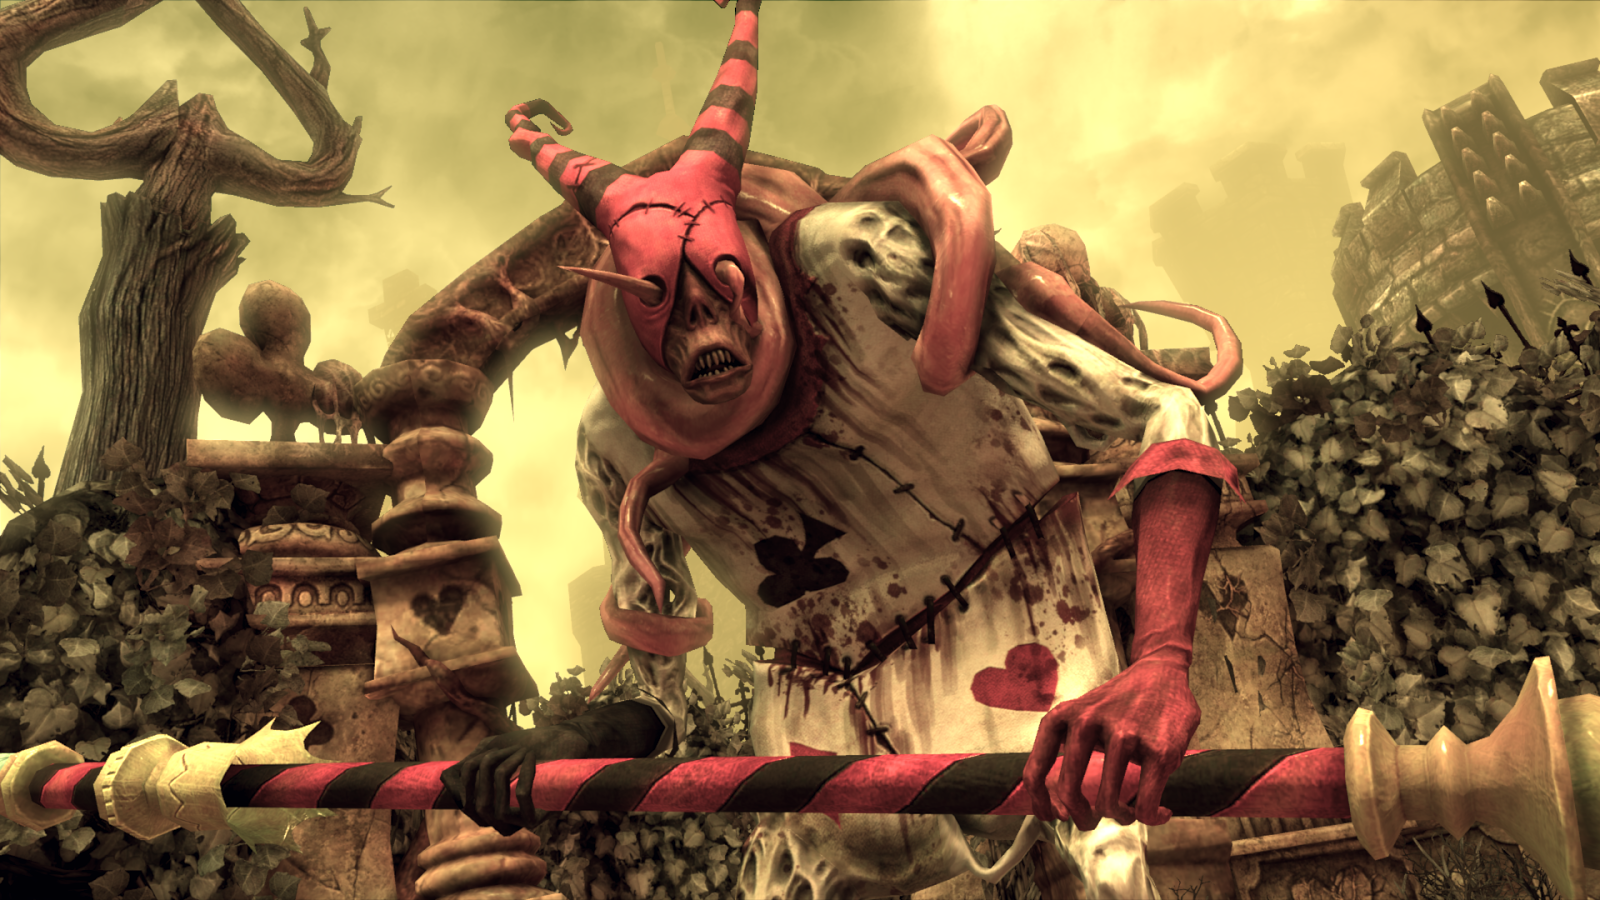 American-McGees-Alice-Madness-Returns-1080p-Wallpaper-32-Executioner